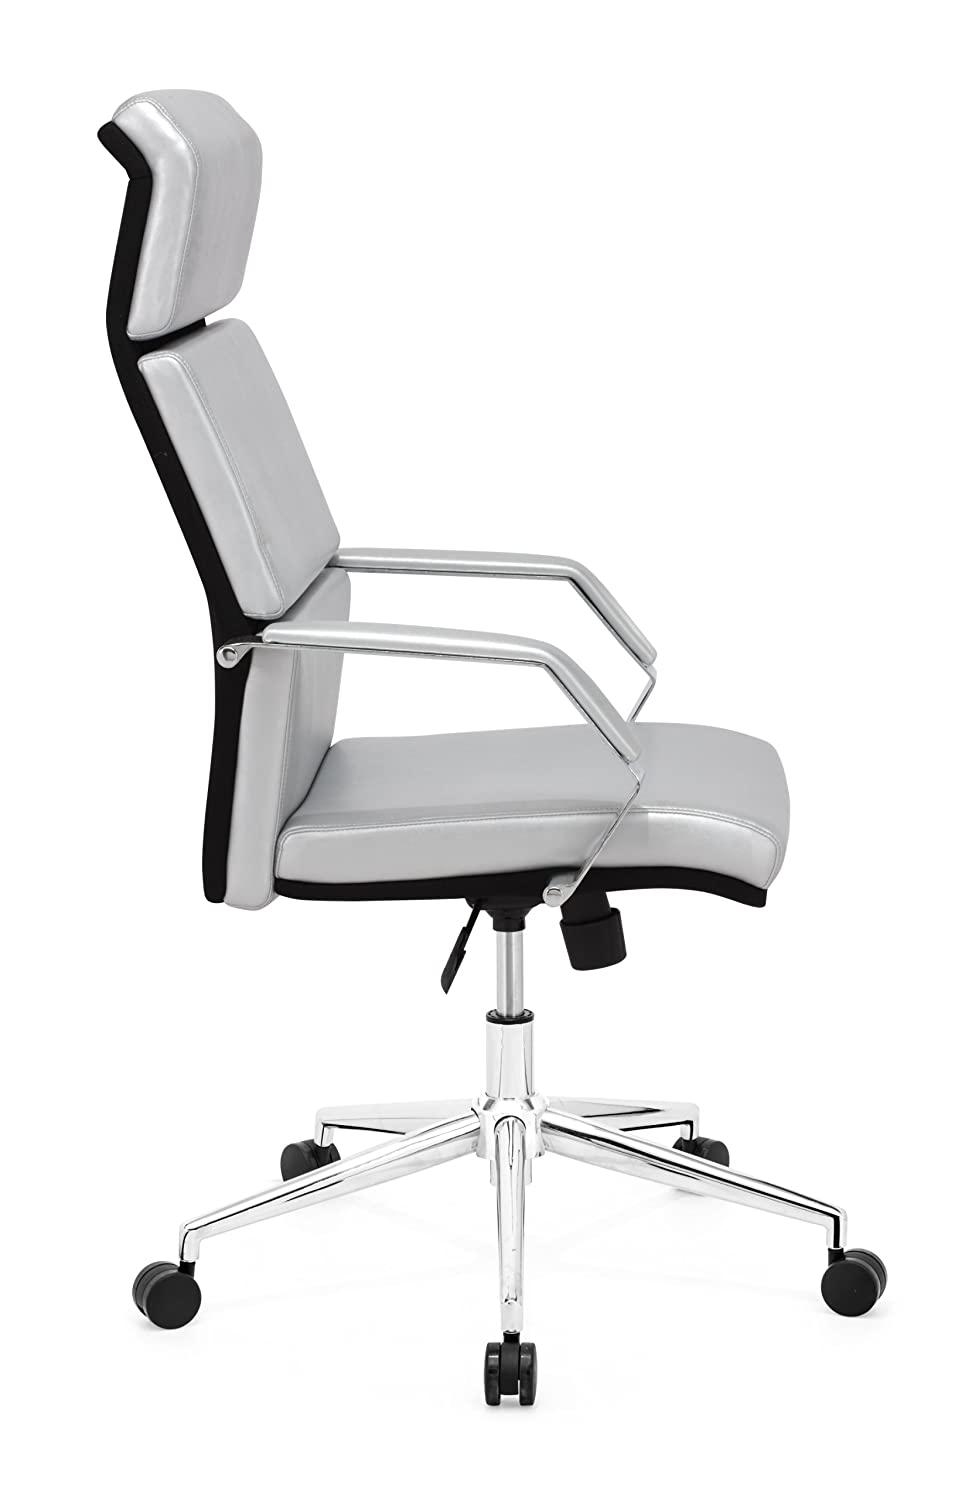 Marvelous Amazon.com: Zuo Modern Lider Pro Office Chair, Silver: Kitchen U0026 Dining